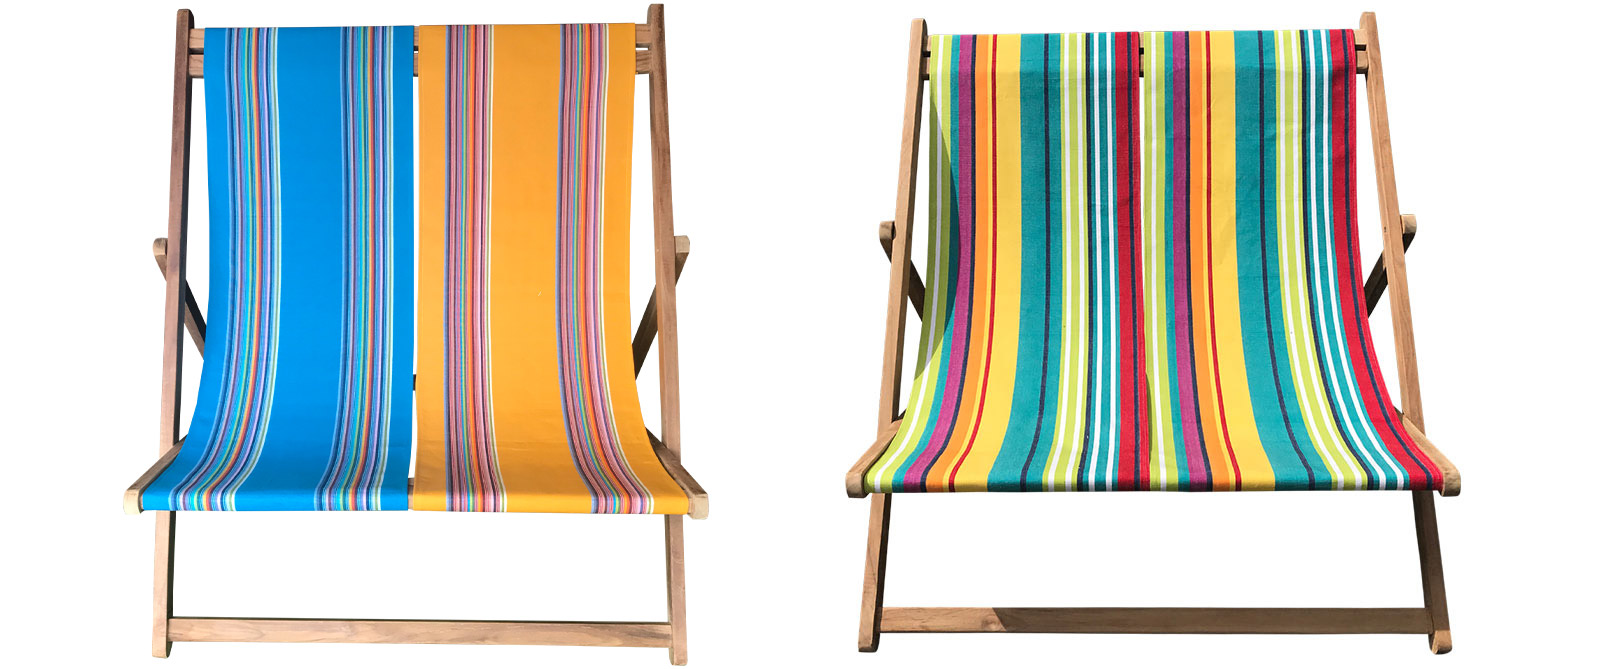 Teak Double Deckchair with 2 turquoise, green, white & navy stripe slings